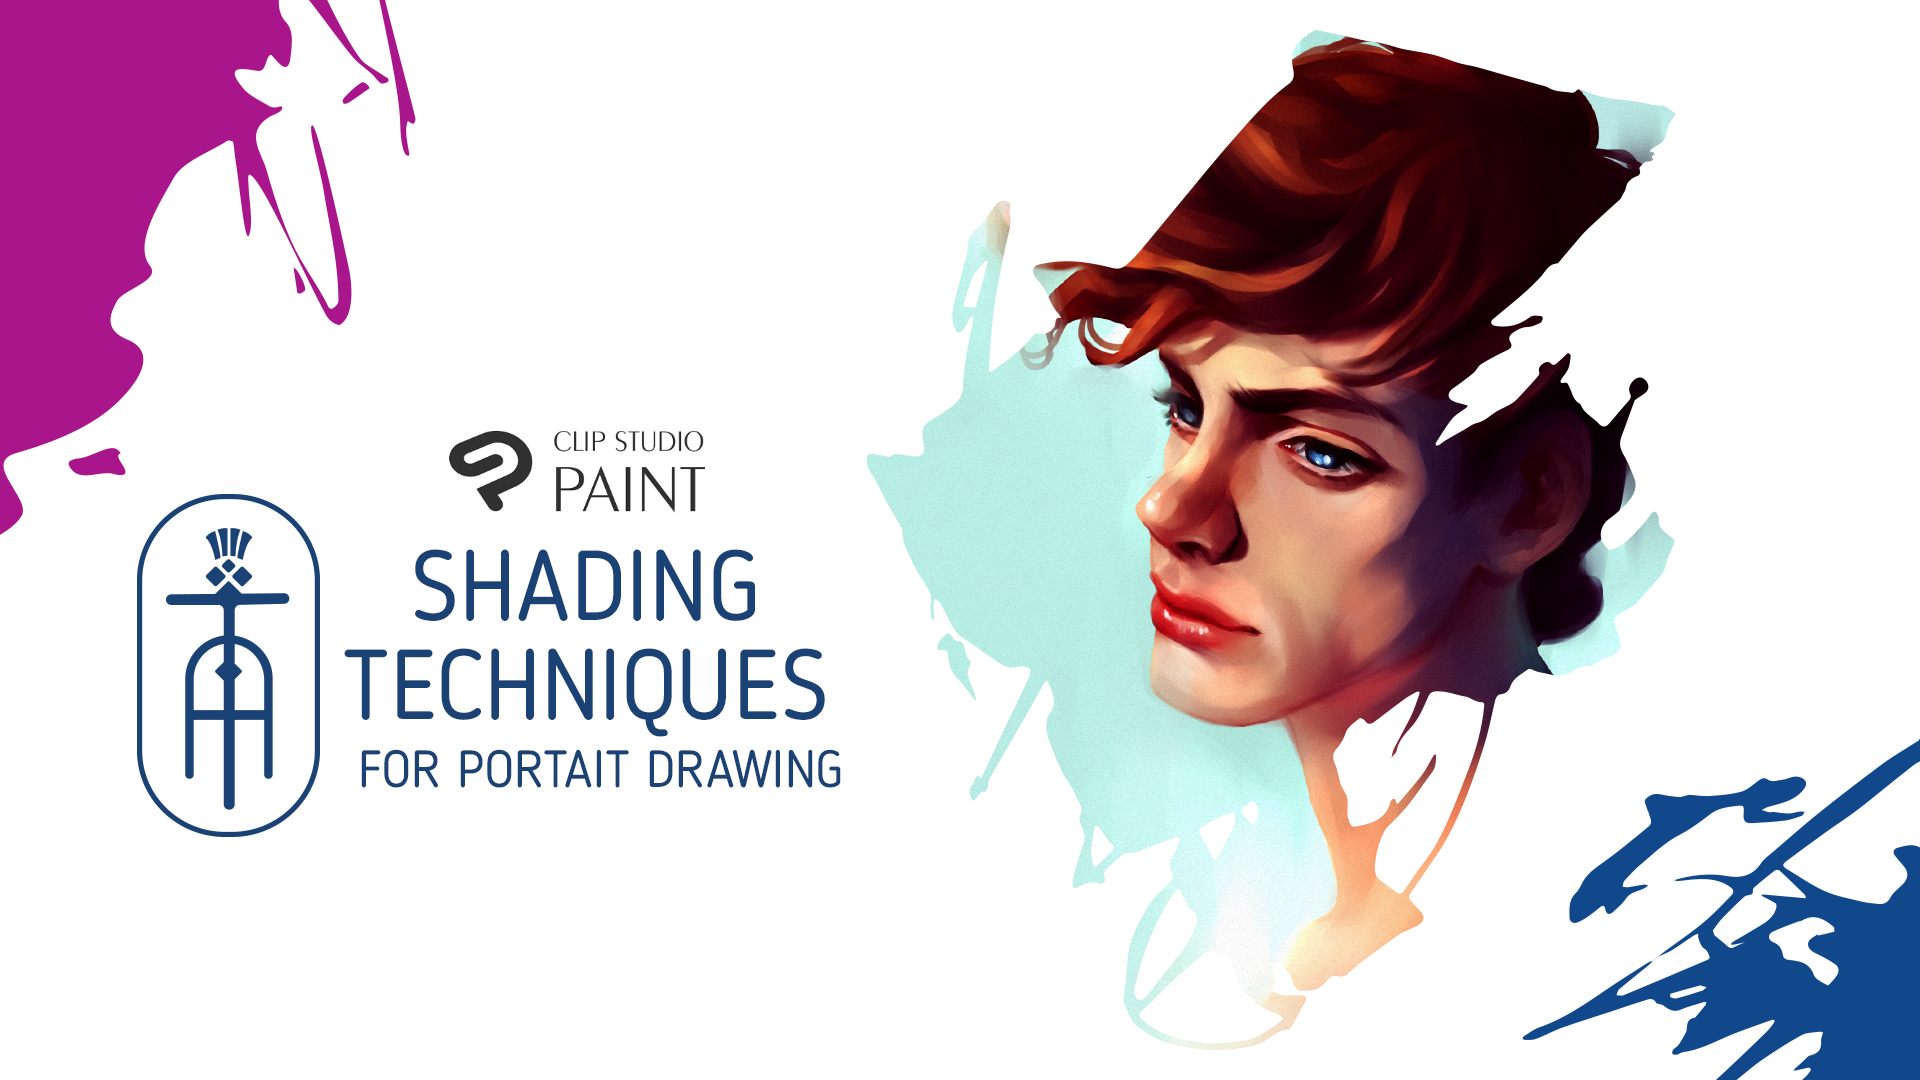 Shading Techniques For Potrait Drawing Video Text By Thistlearts Clip Studio Tips